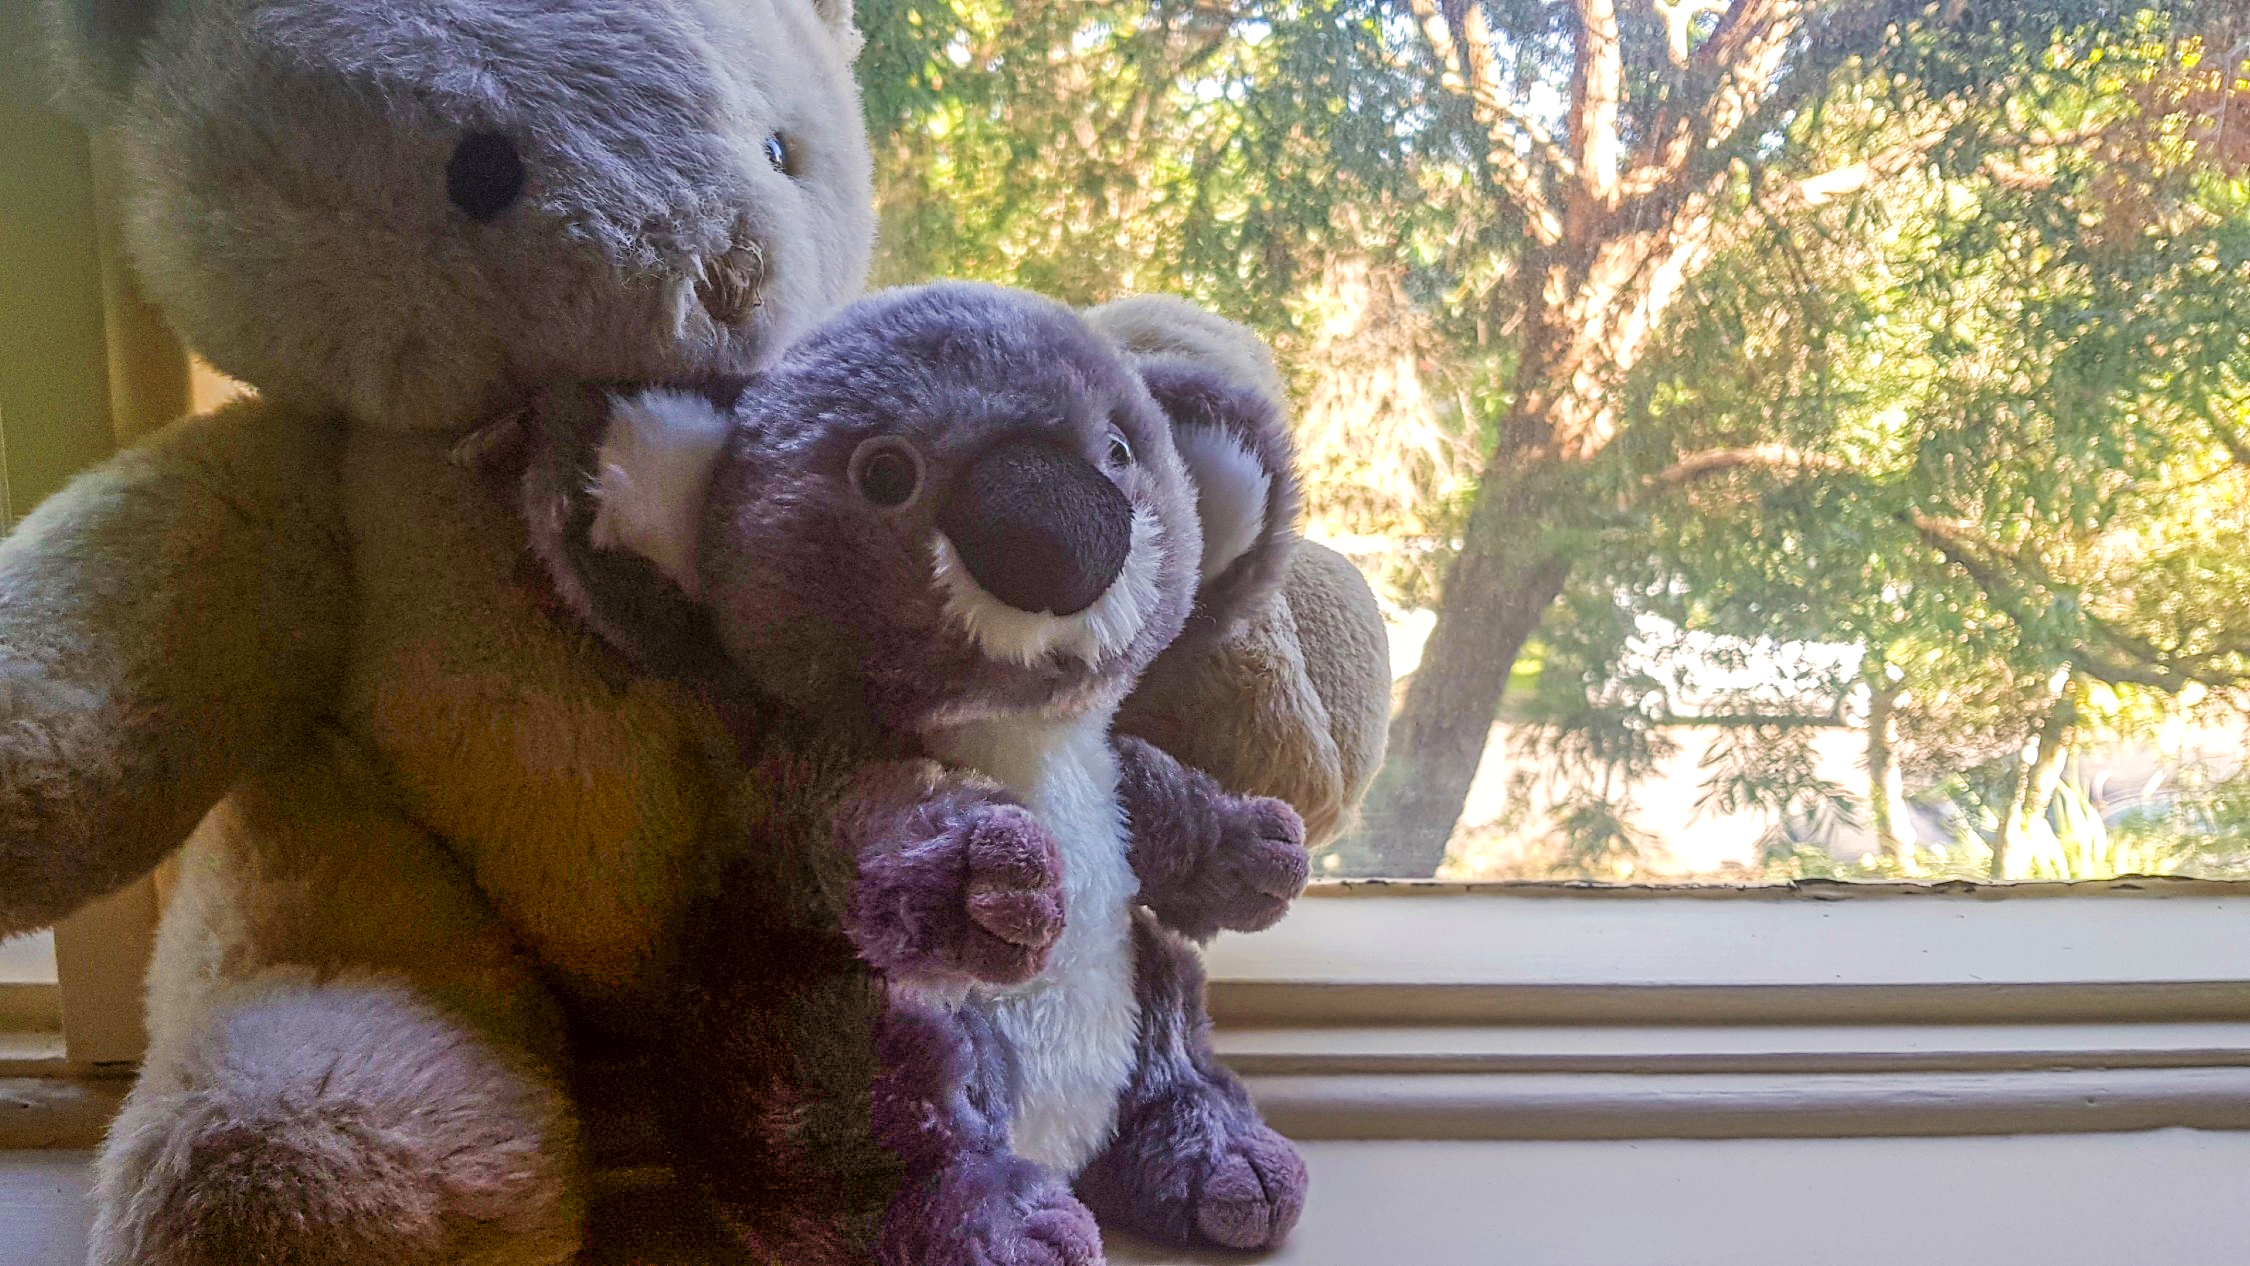 Why Melburnians are putting teddy bears in their windows